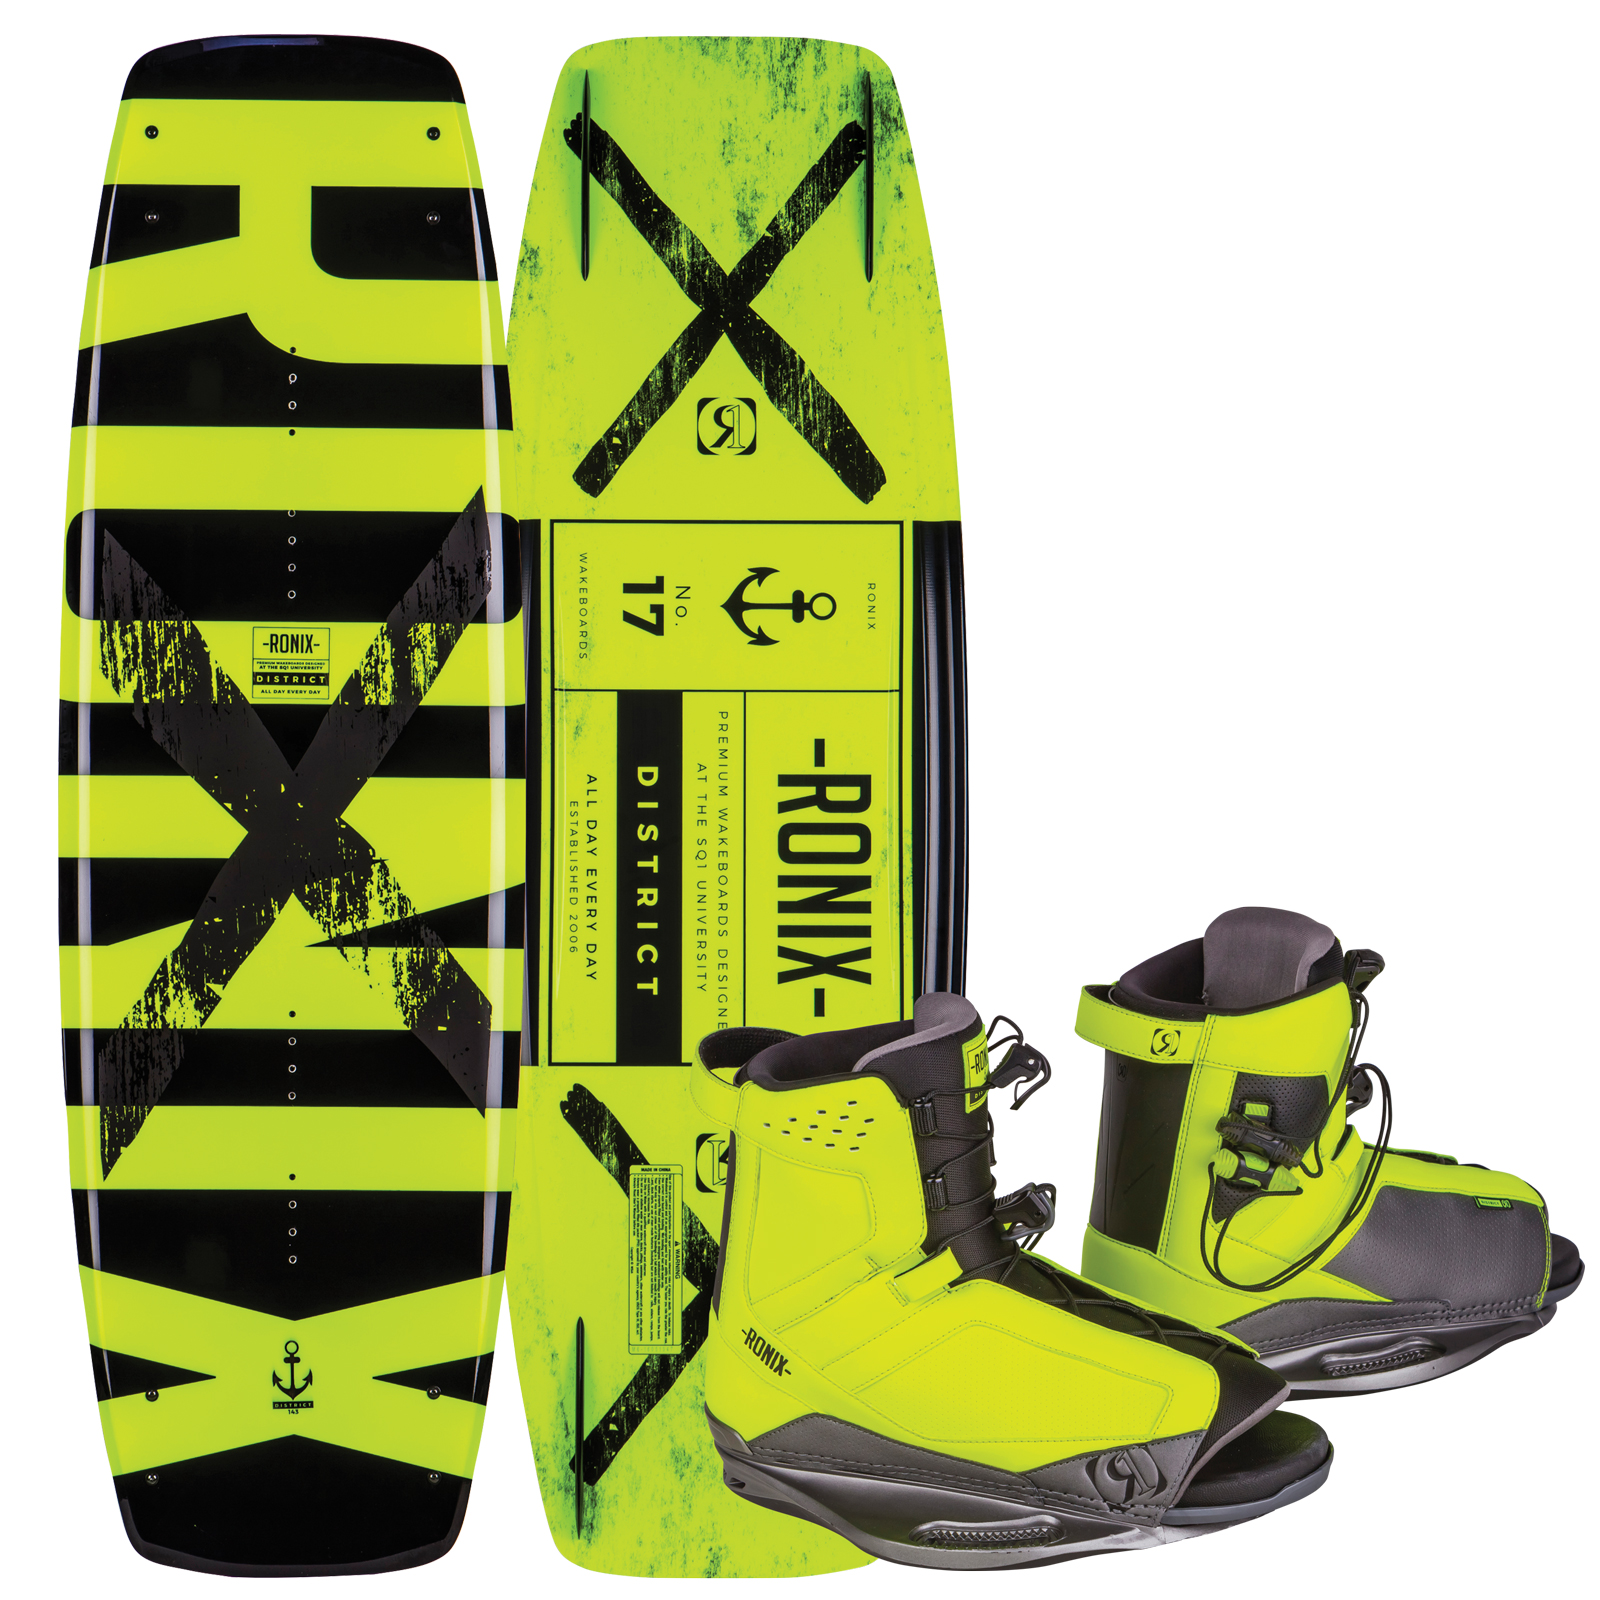 DISTRICT 129W/ DISTRICT PACKAGE RONIX 2017